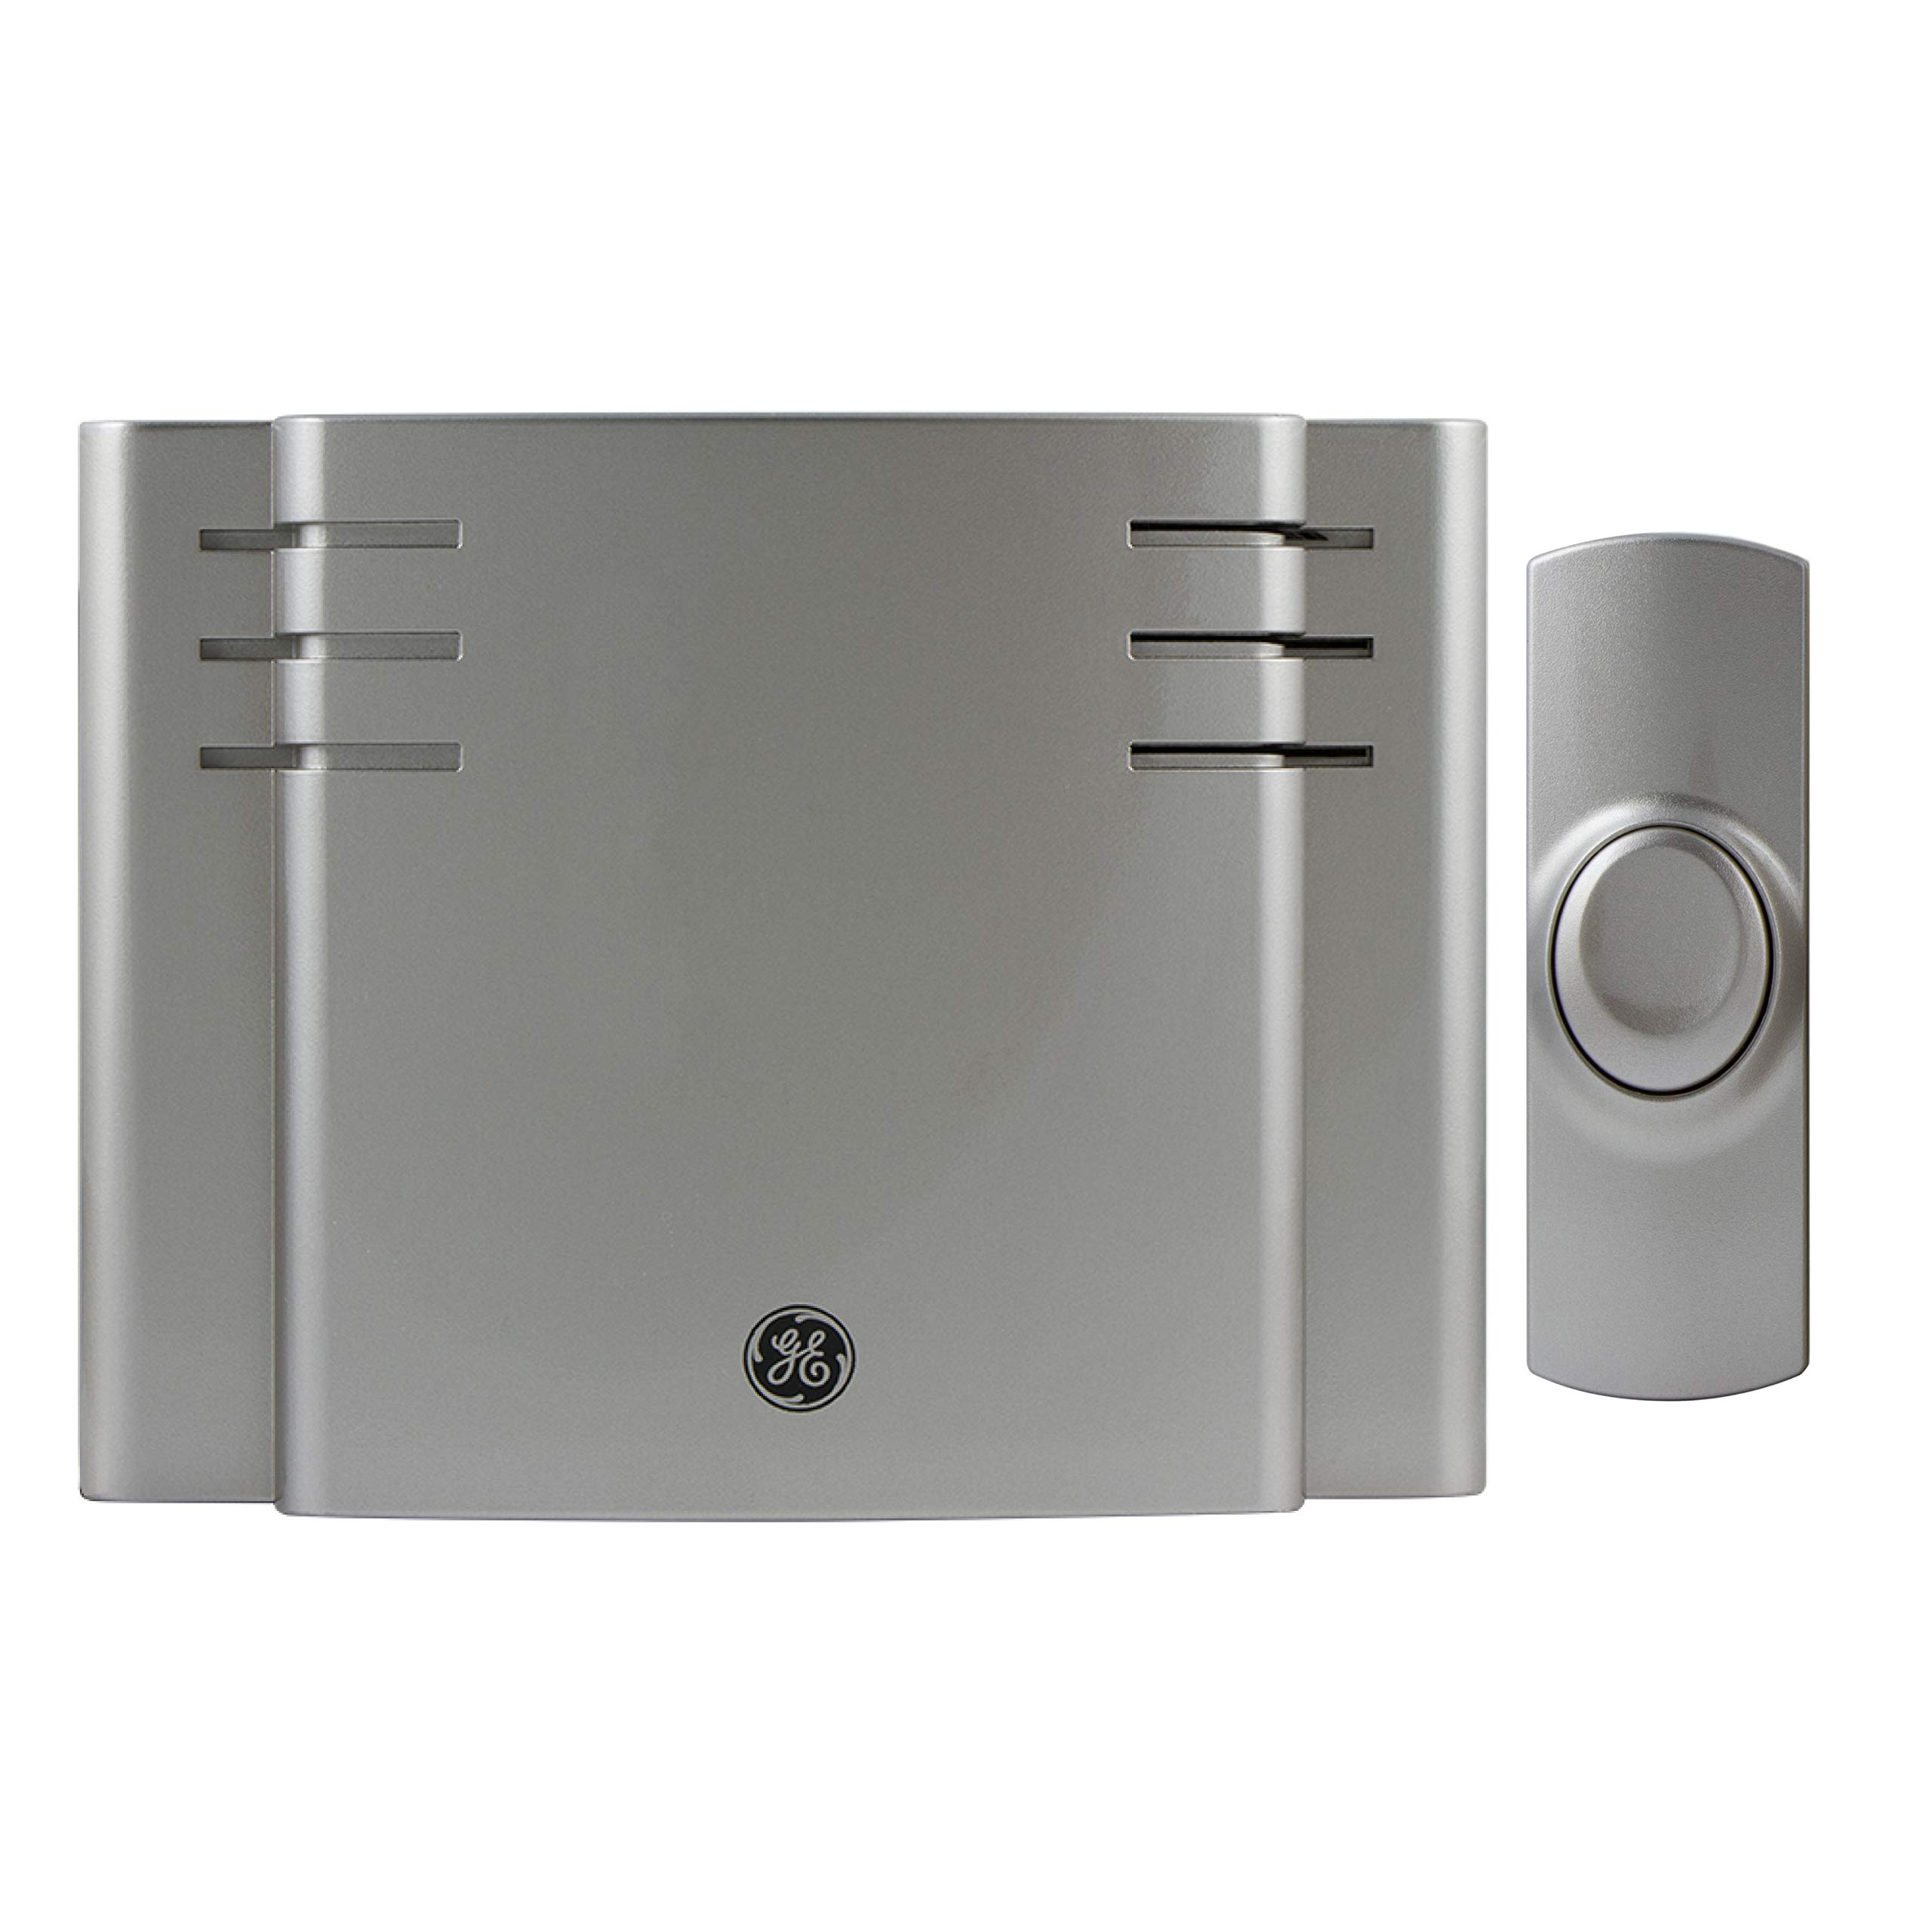 GE Wireless Doorbell Kit, 8 Chime Melodies, 1 Receiver, 1 Push Button, Battery-Operated, 150-Foot Range, Satin Nickel, 19303